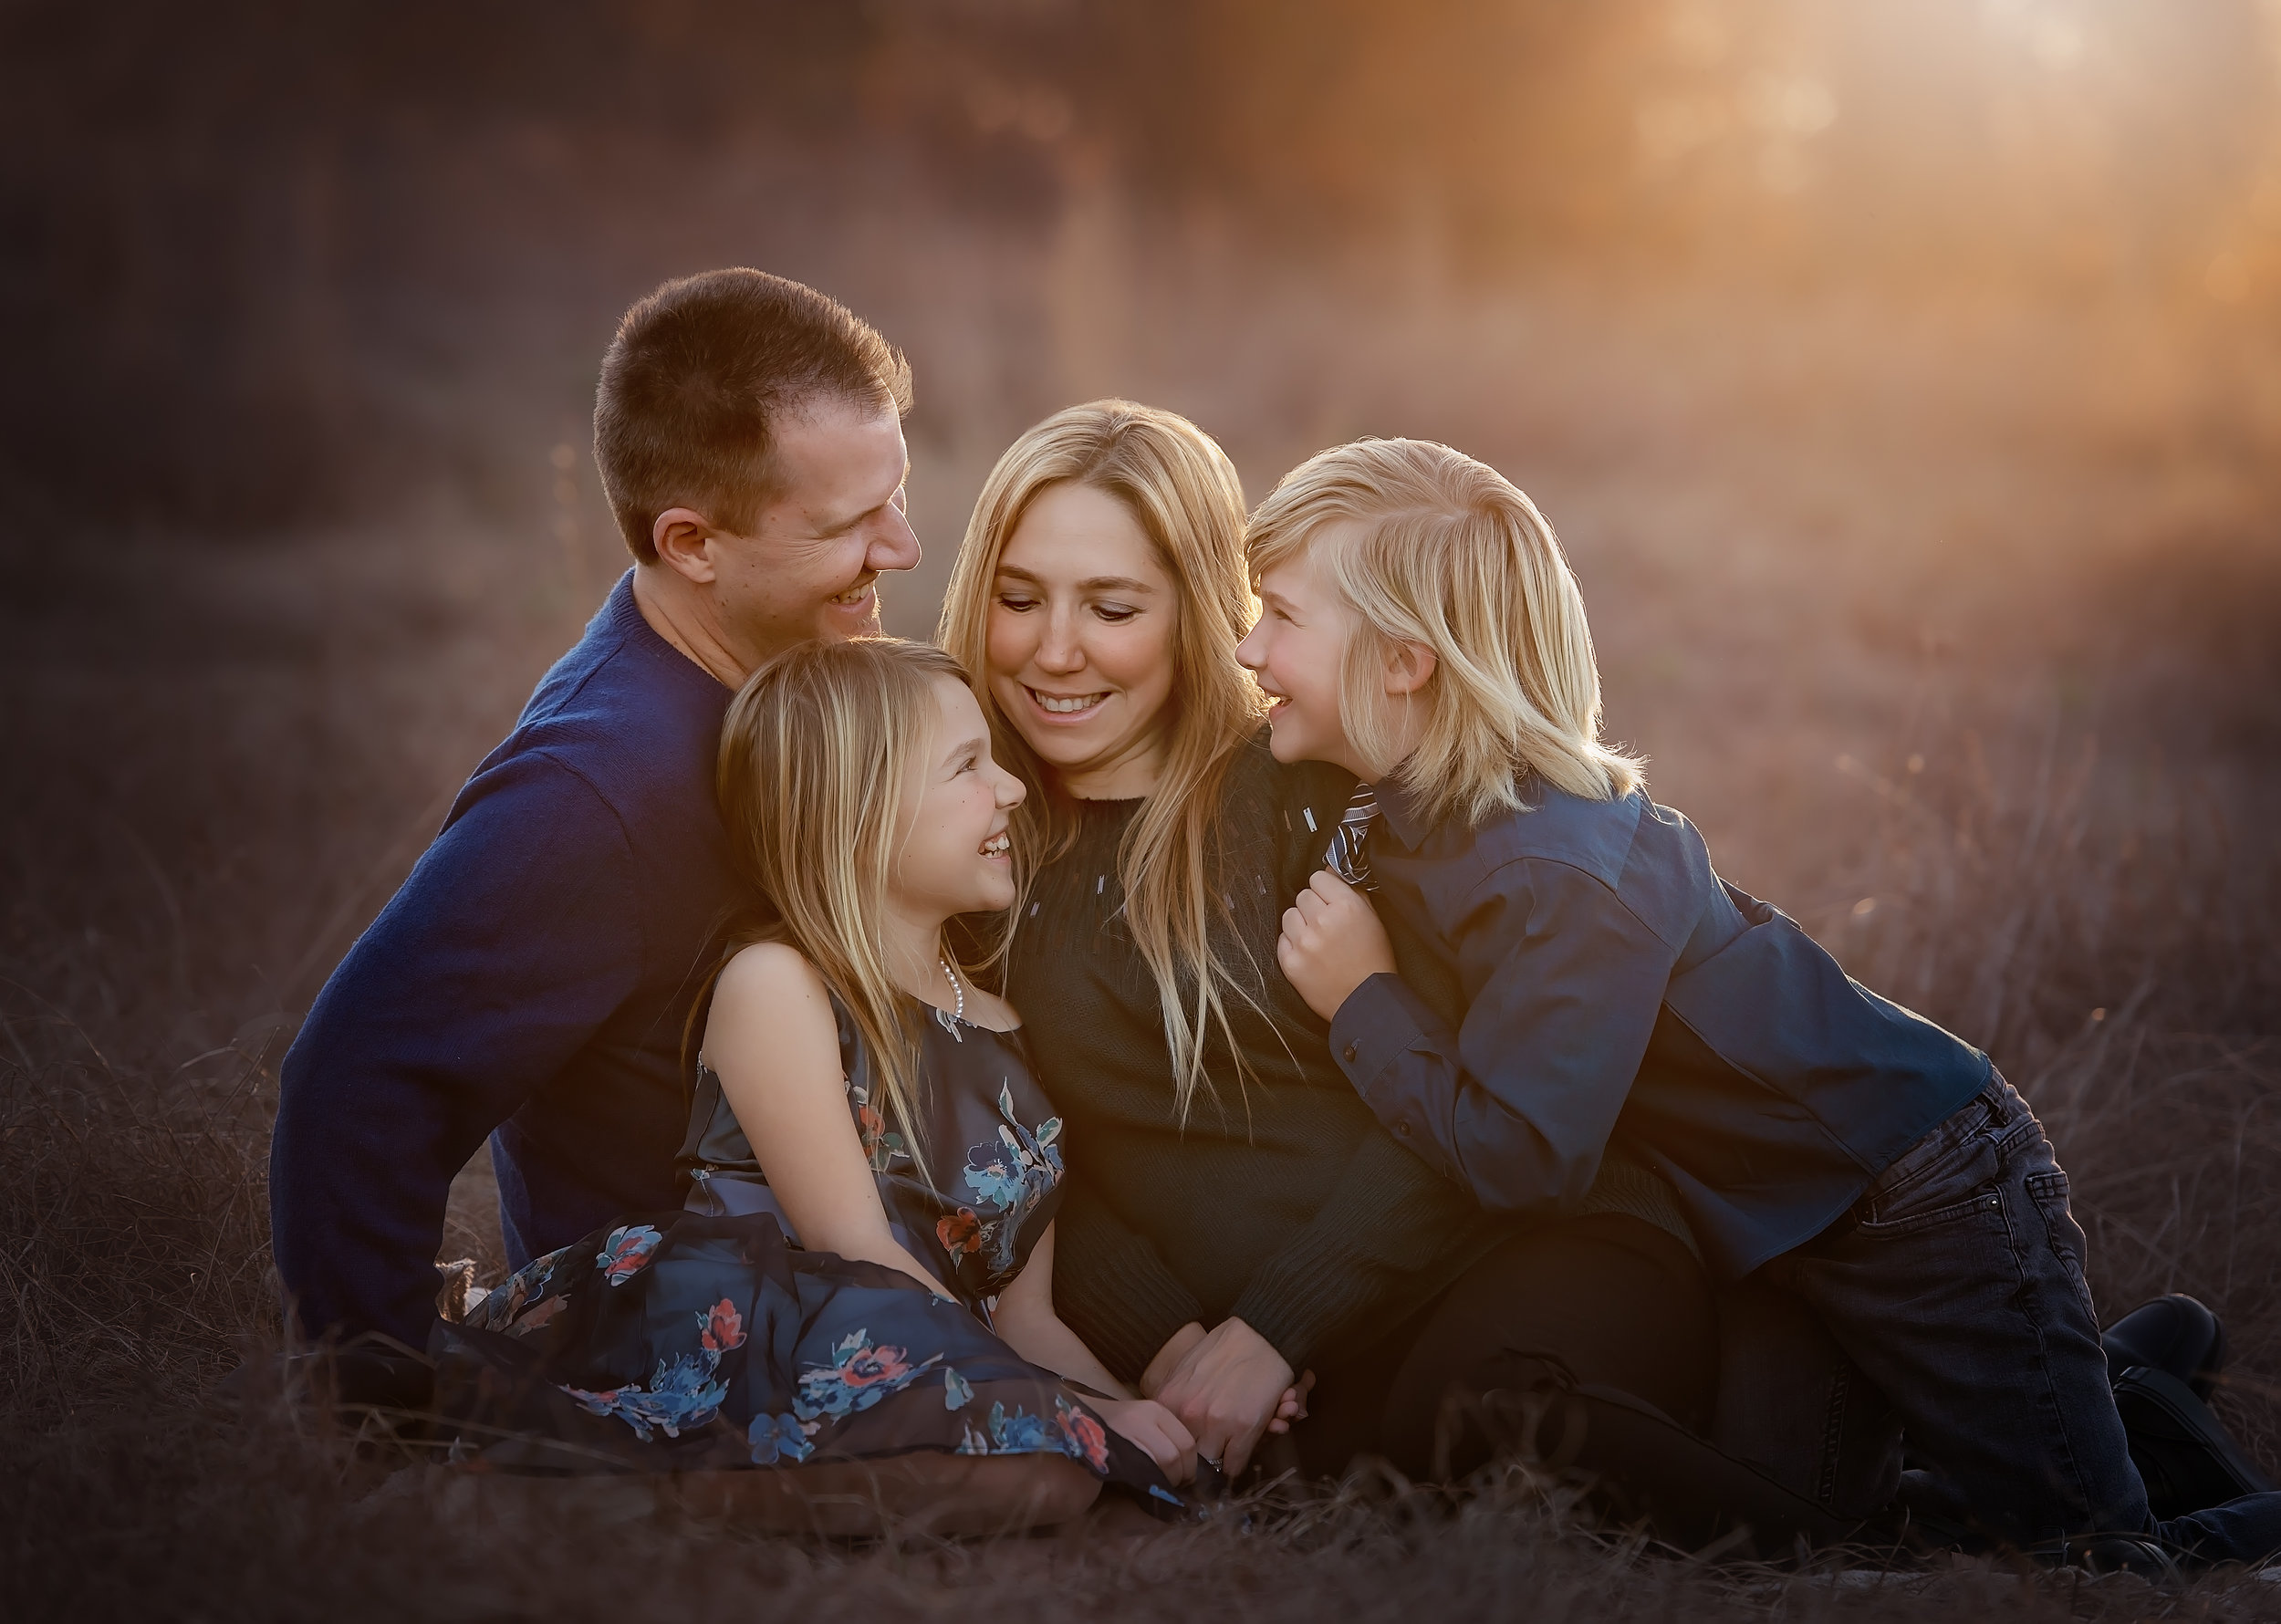 Family - Session fee: 295Includes:- In-studio pre-session consultation- 1 hour session on location (within 30 miles, single family)- Fully edited fine art portraits presented in a slideshow- In-person reveal and ordering appt (refer to info above)